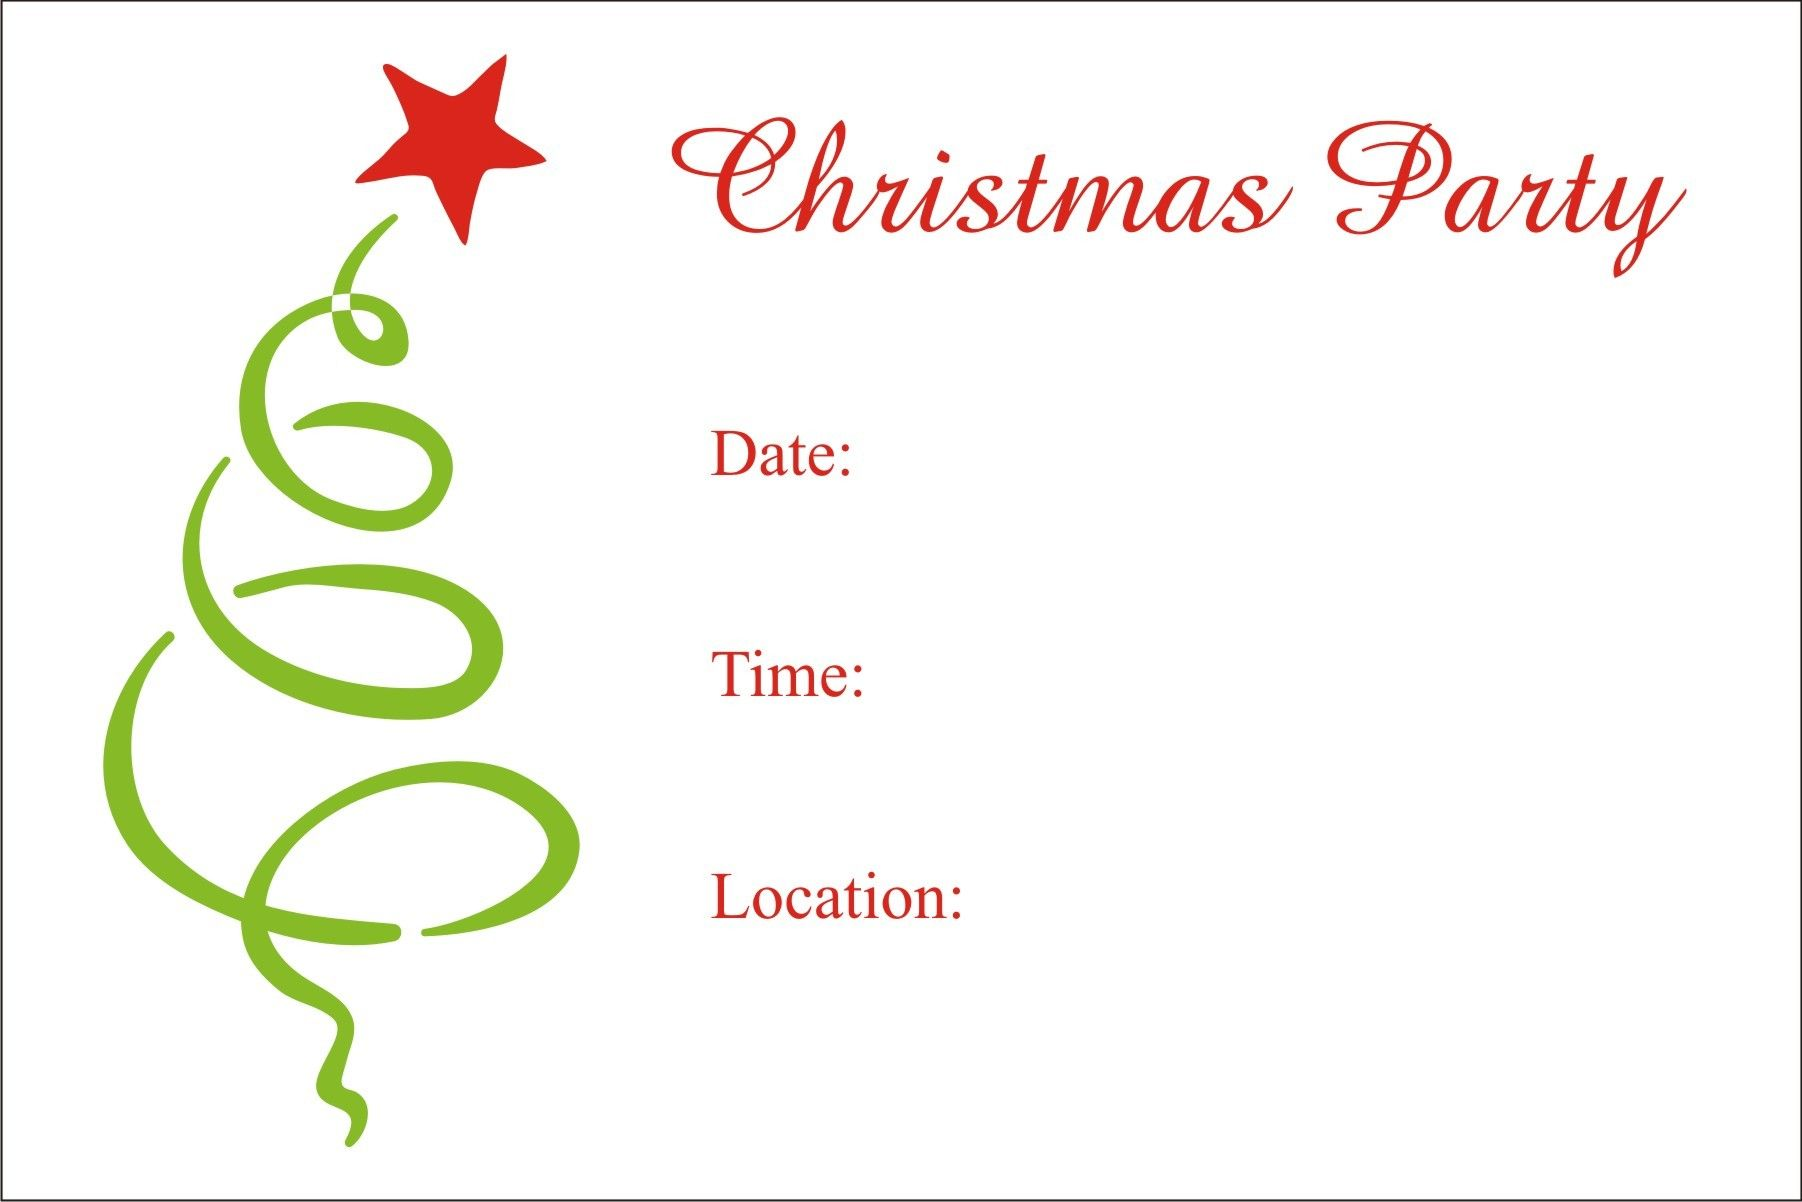 Downloadable Christmas Party Invitations Templates Free Simple Christmas Party Free Printable Holiday Invitation Just In Time For .